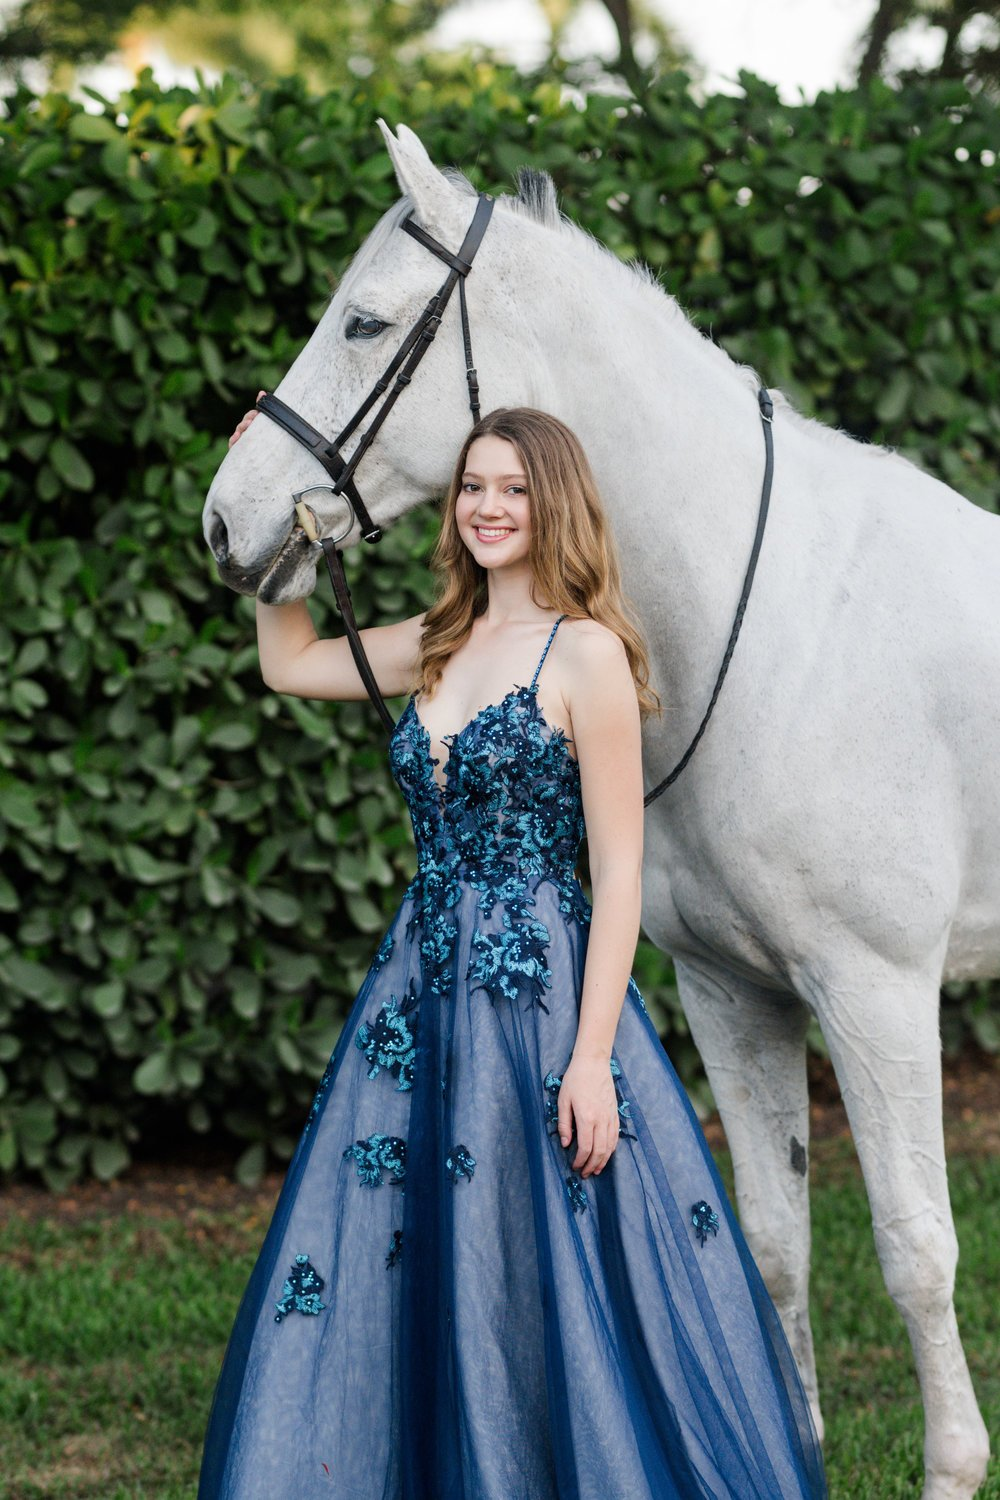 https://0201.nccdn.net/1_2/000/000/138/754/prom-dress-with-horse.jpg